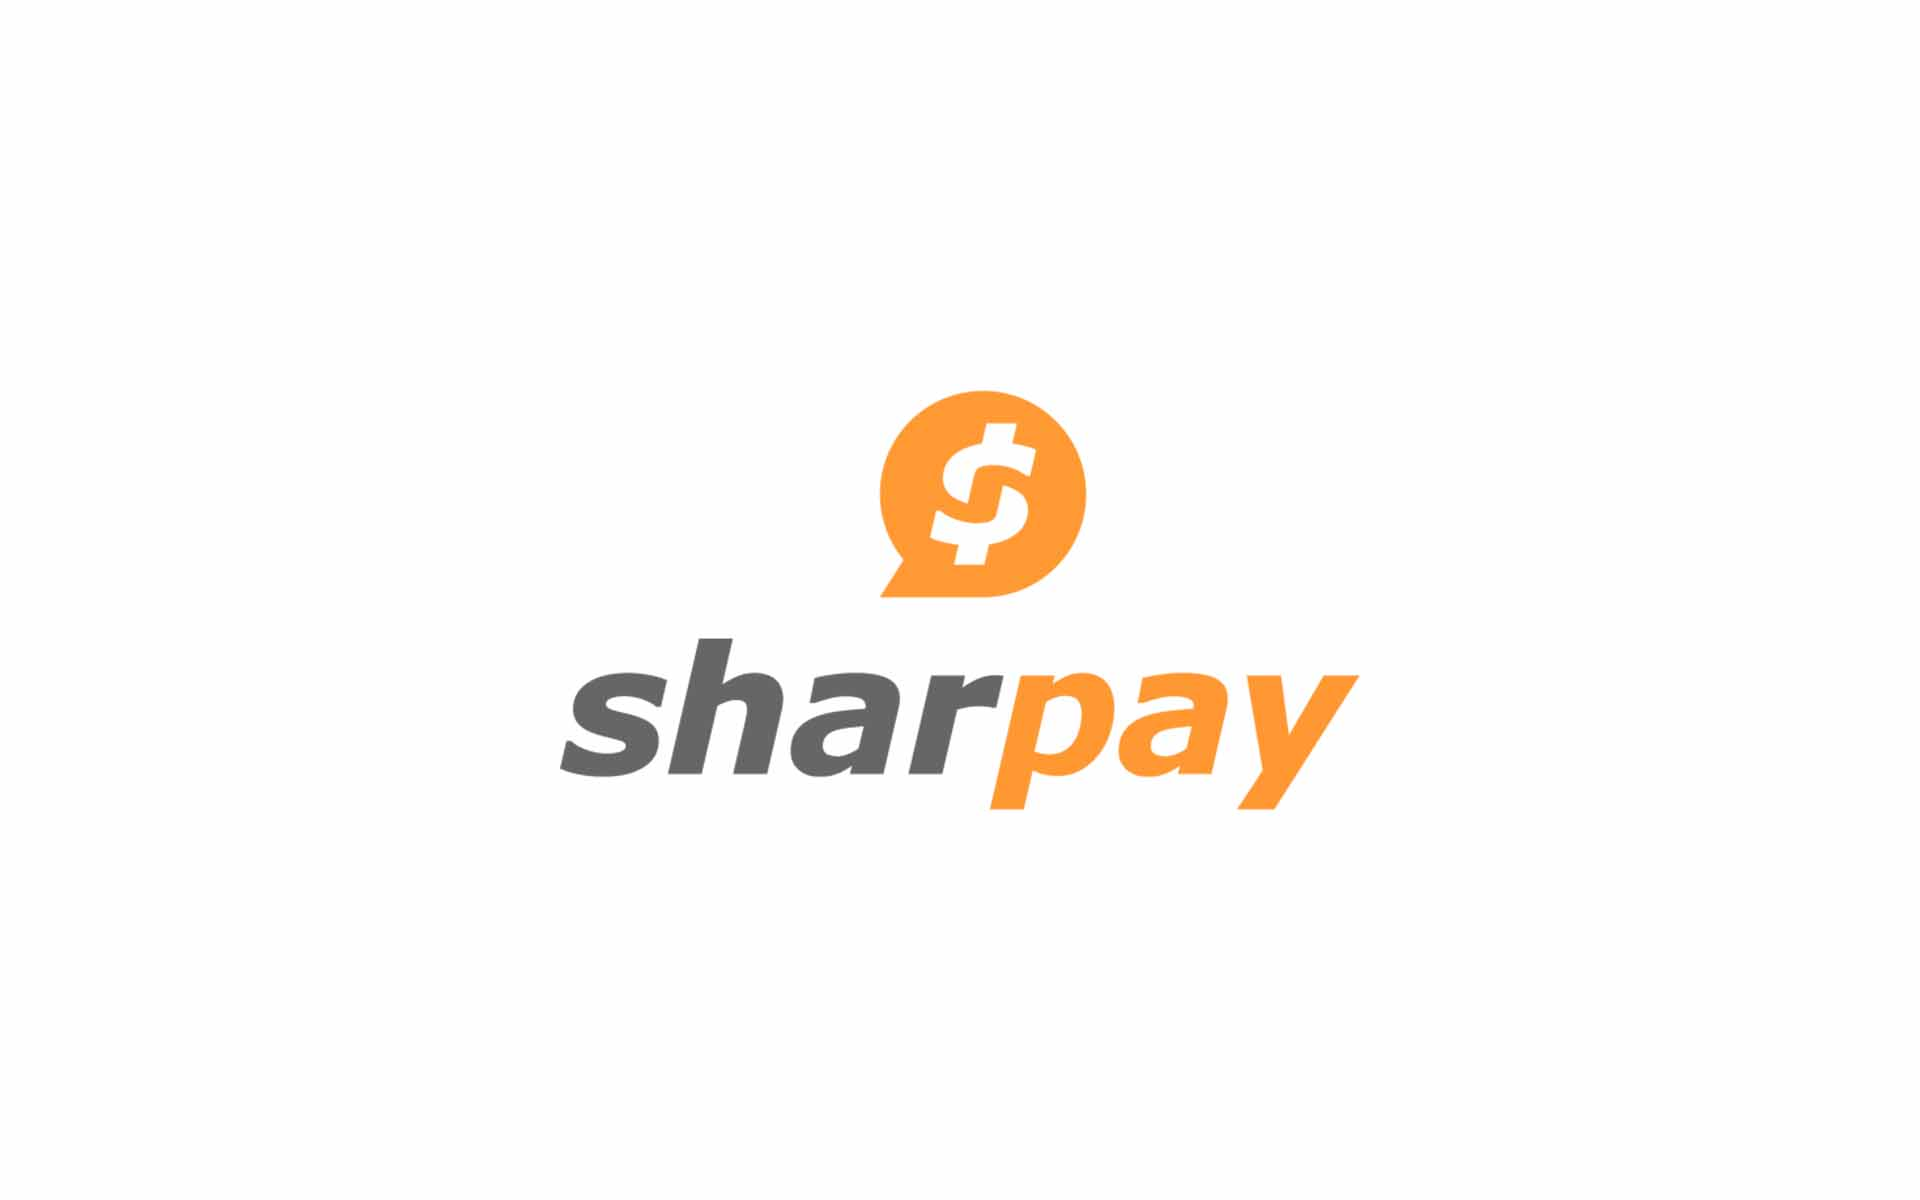 Sharpay Share Buttons Successfully Raised 2400 EHT in Presale and Announcing Token Sale